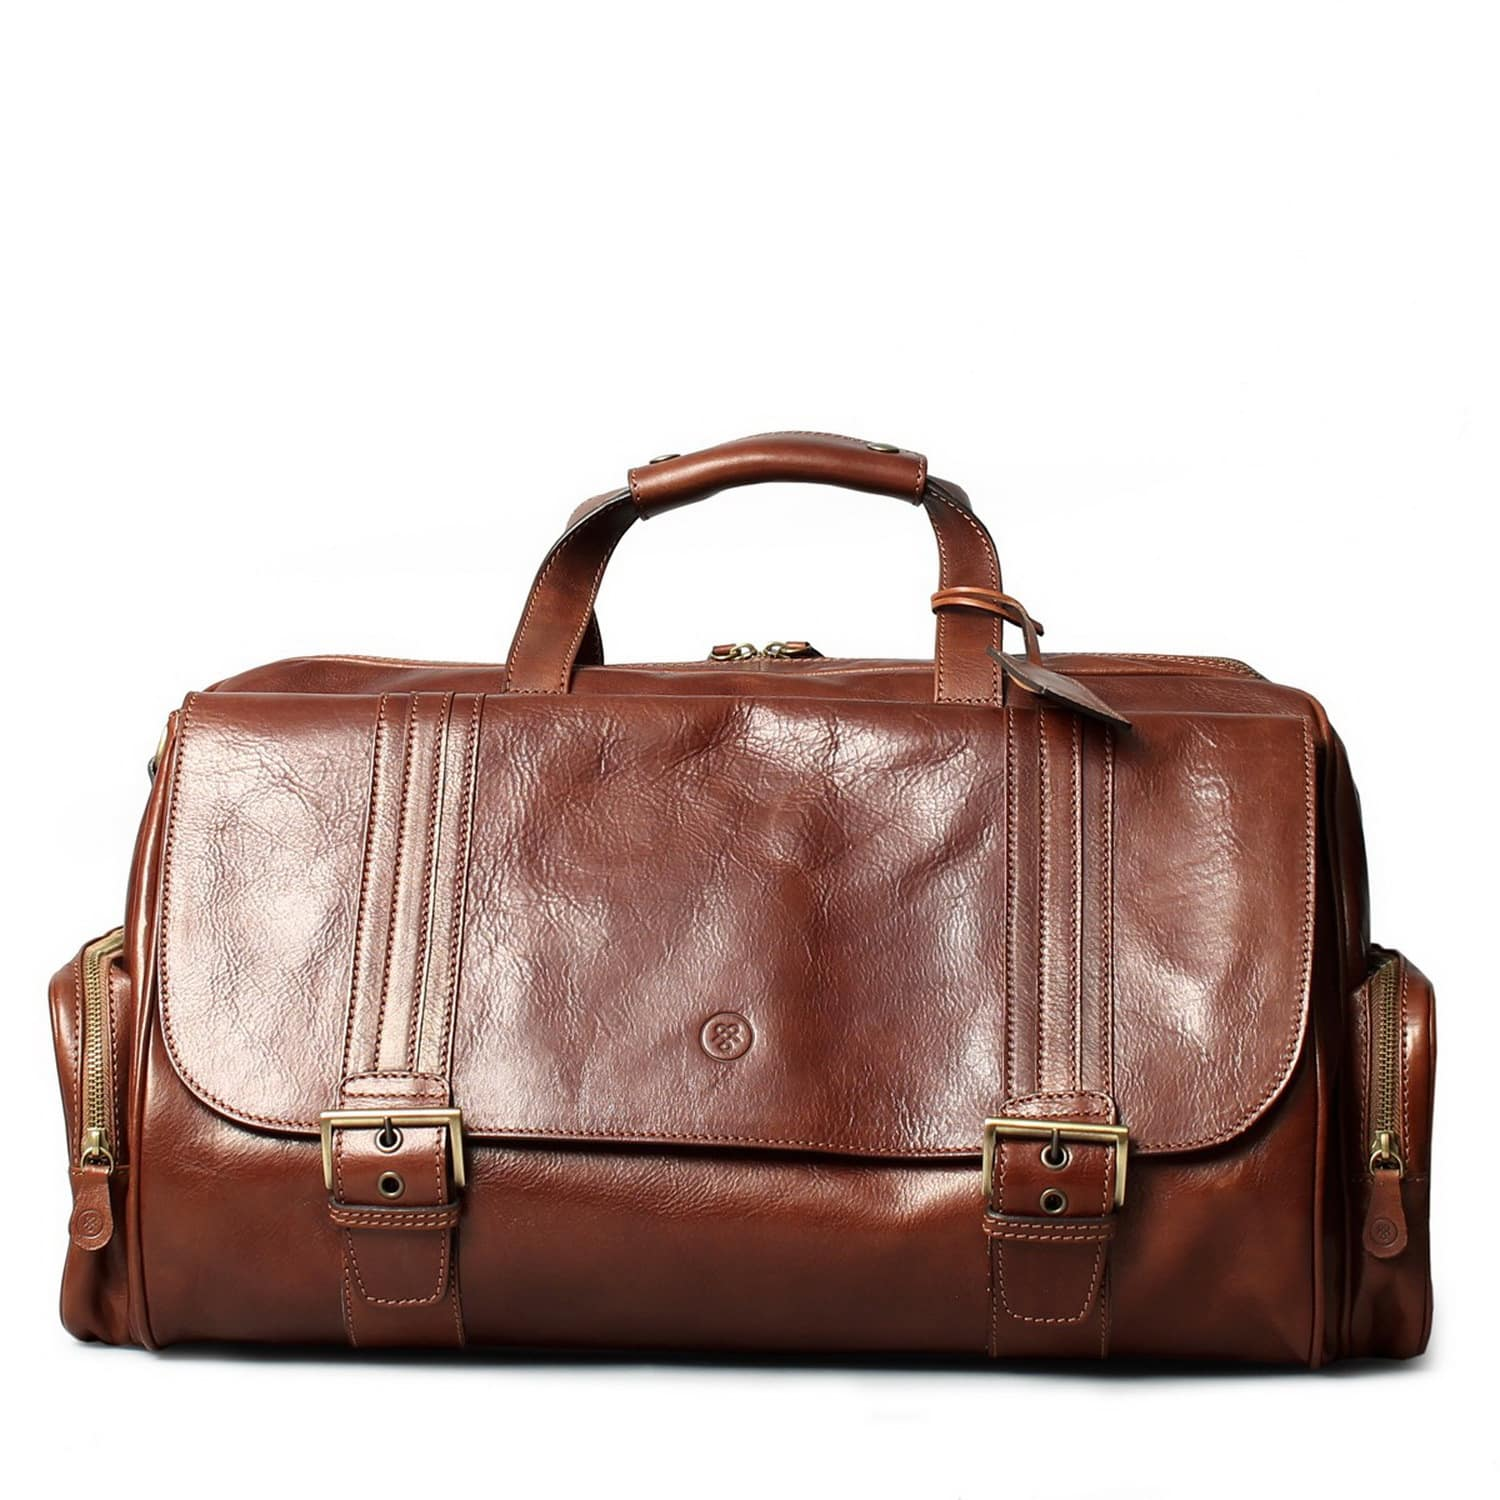 e5adda2dbf0ff Luxury Italian Leather Men's Duffle Bag Dino M Chestnut Tan ...